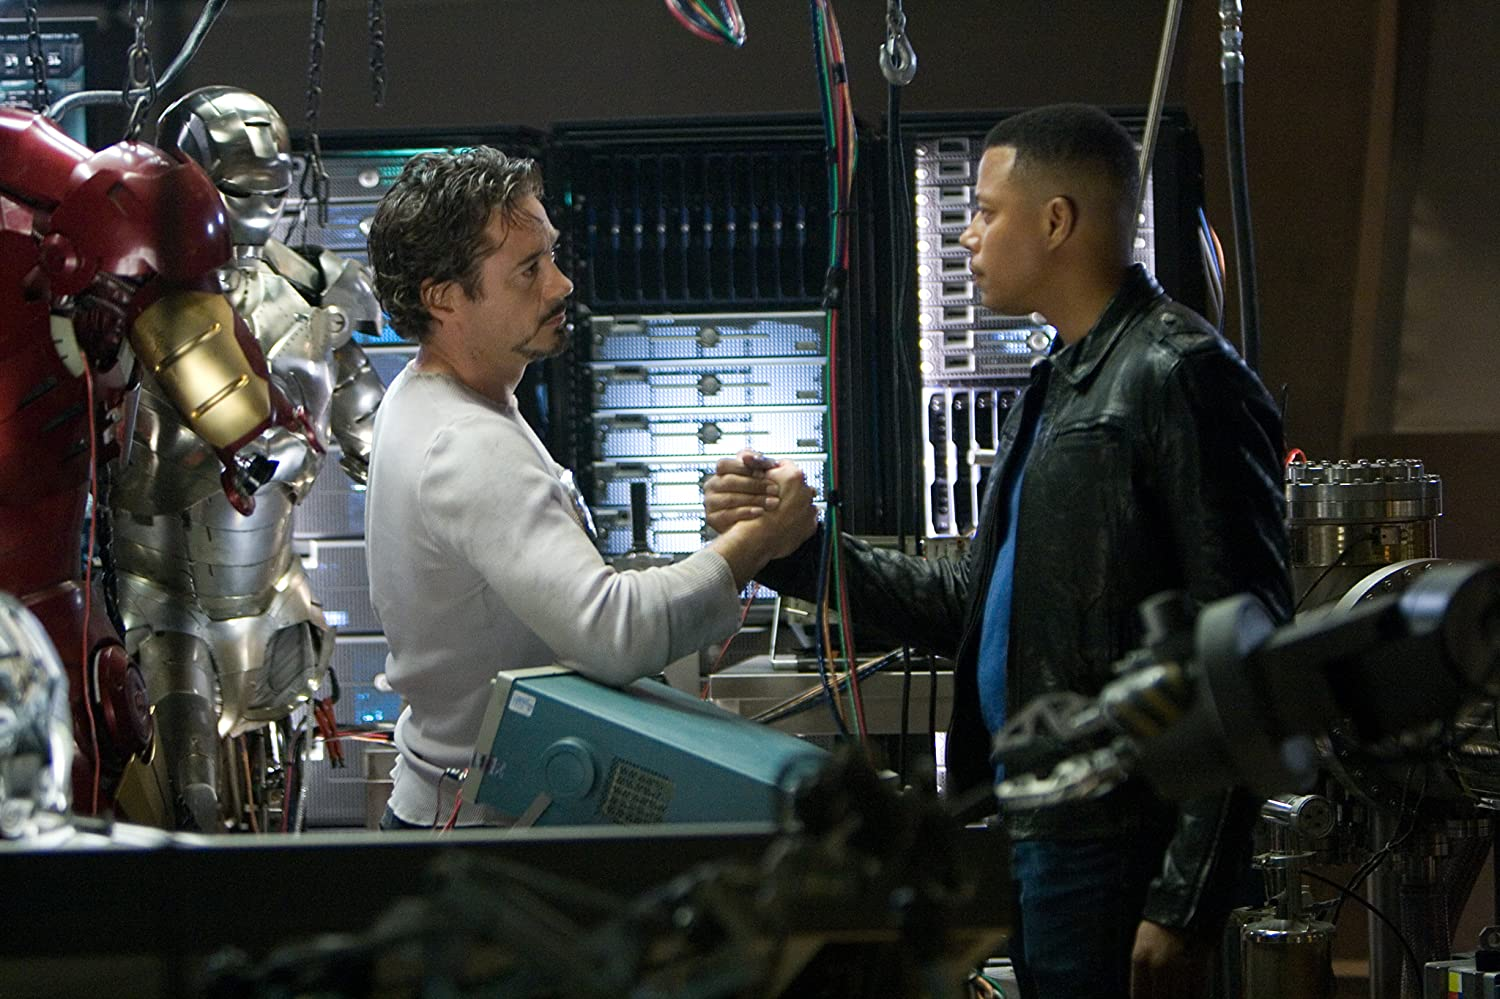 Robert Downey Jr. and Terrence Howard in Iron Man (2008)